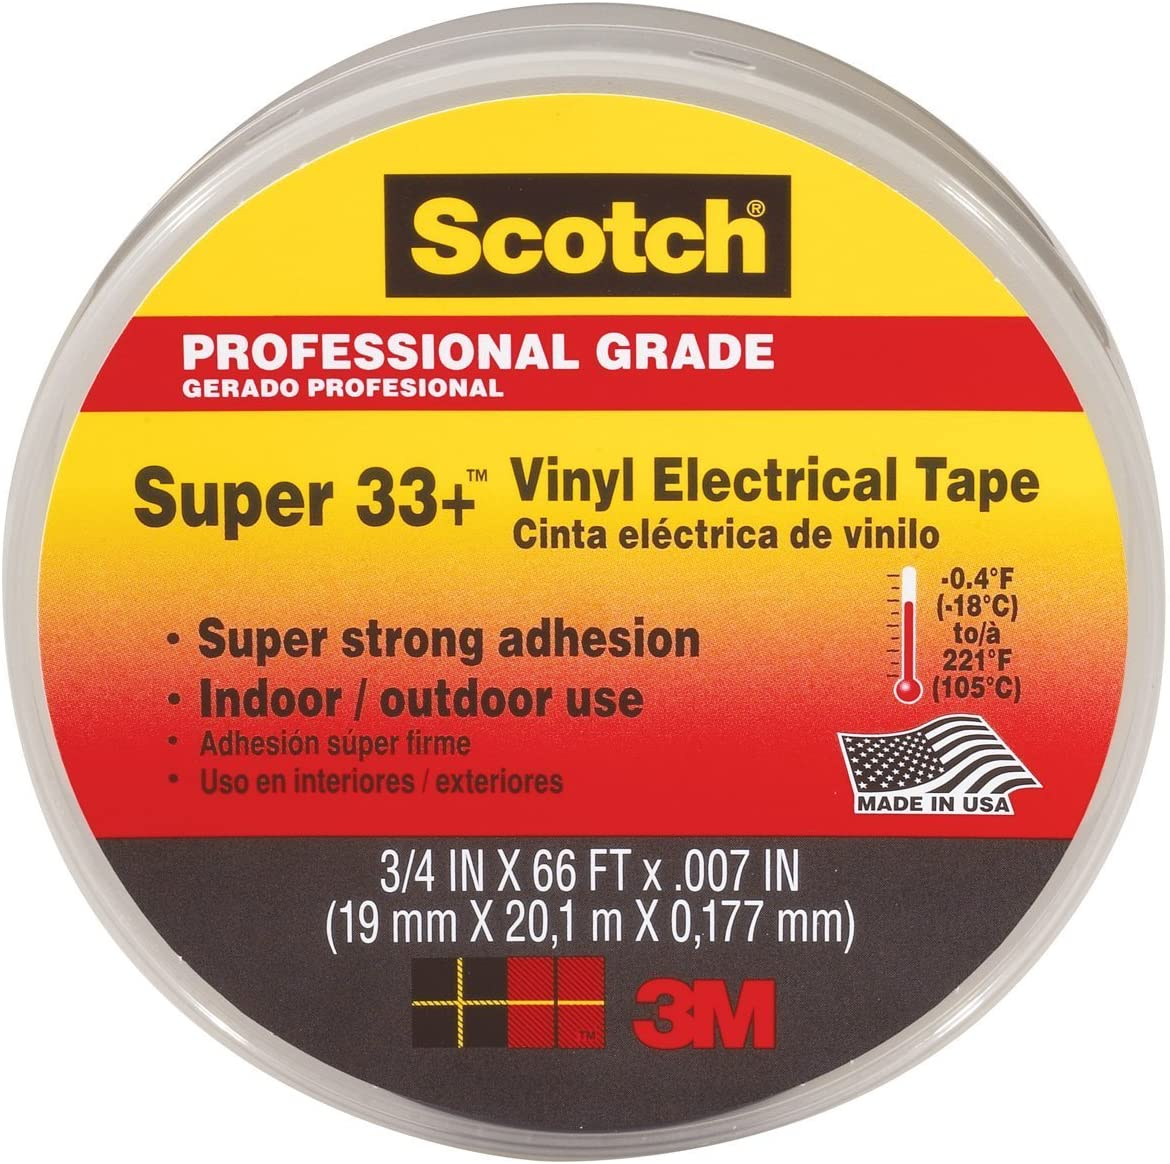 Scotch Vinyl Plastic Electrical Tape